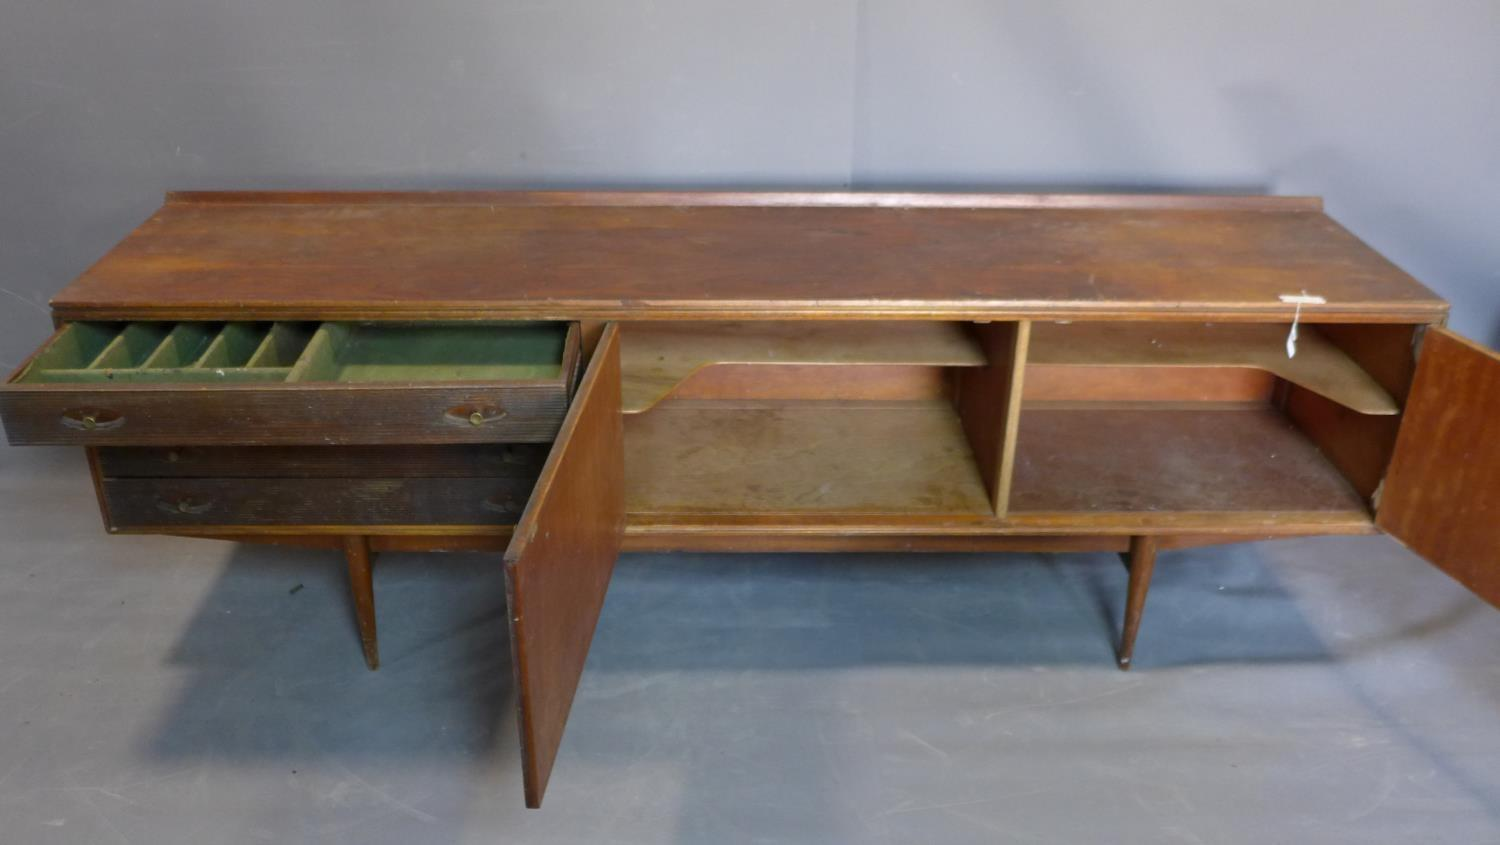 A mid century teak sideboard designed by Robert Heritage (b.1927) for Archie Shine Ltd, c.1958, same - Image 3 of 3